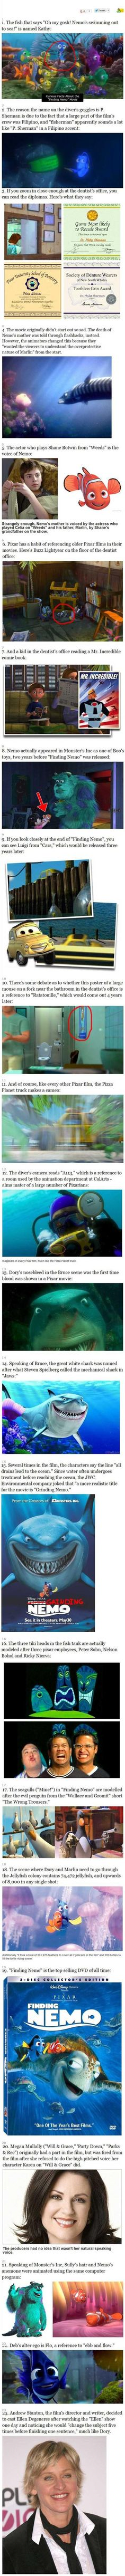 Facts About Finding Nemo! MY FAVORITE PIXAR MOVIE EVER!!!! :D I actually knew some of these. Totally worth reading